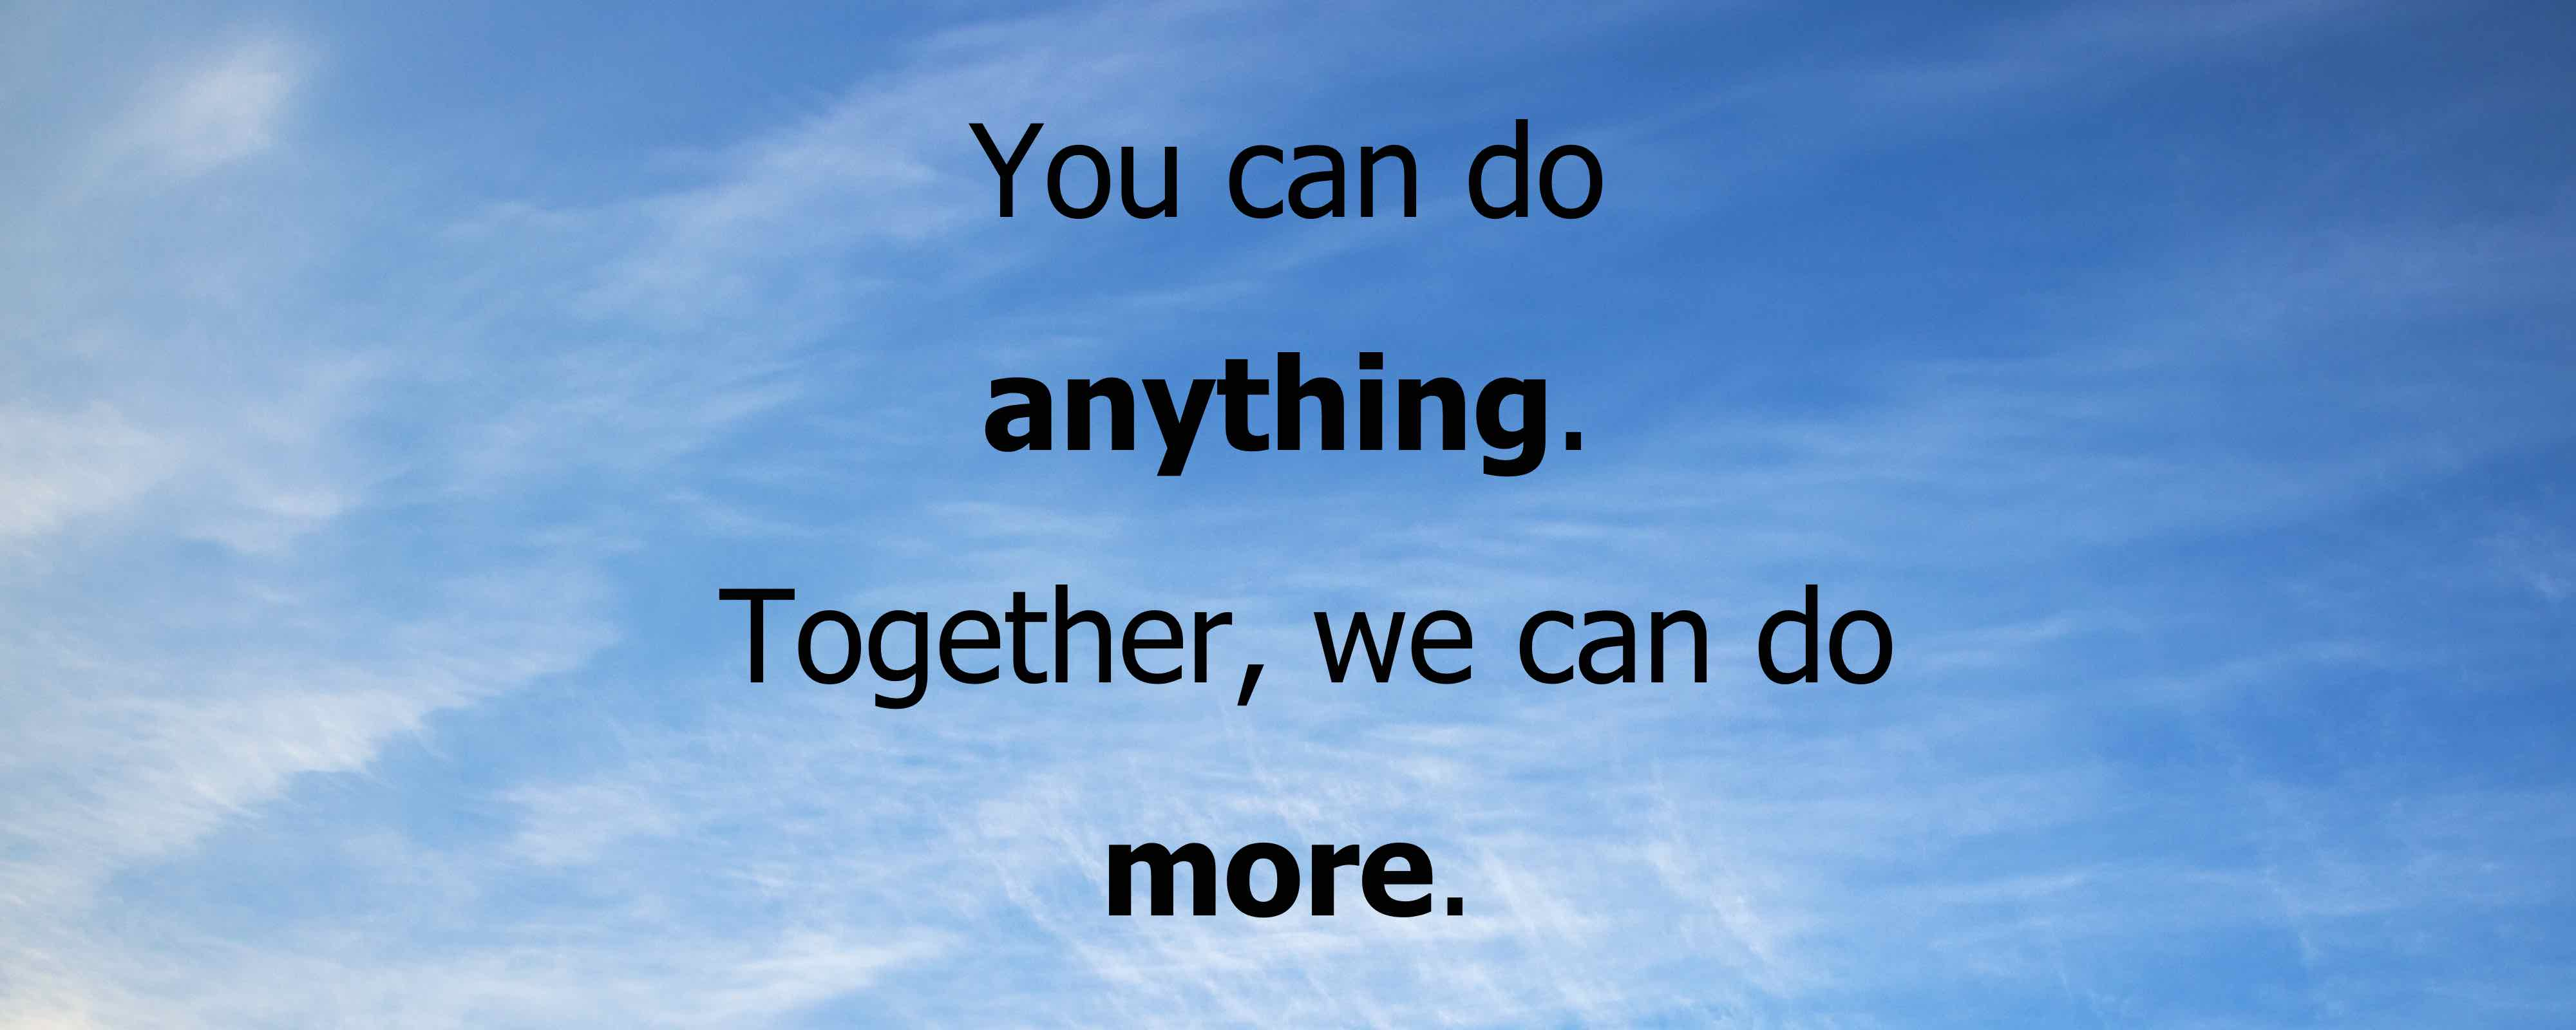 You can do anything. Together, we can do more.